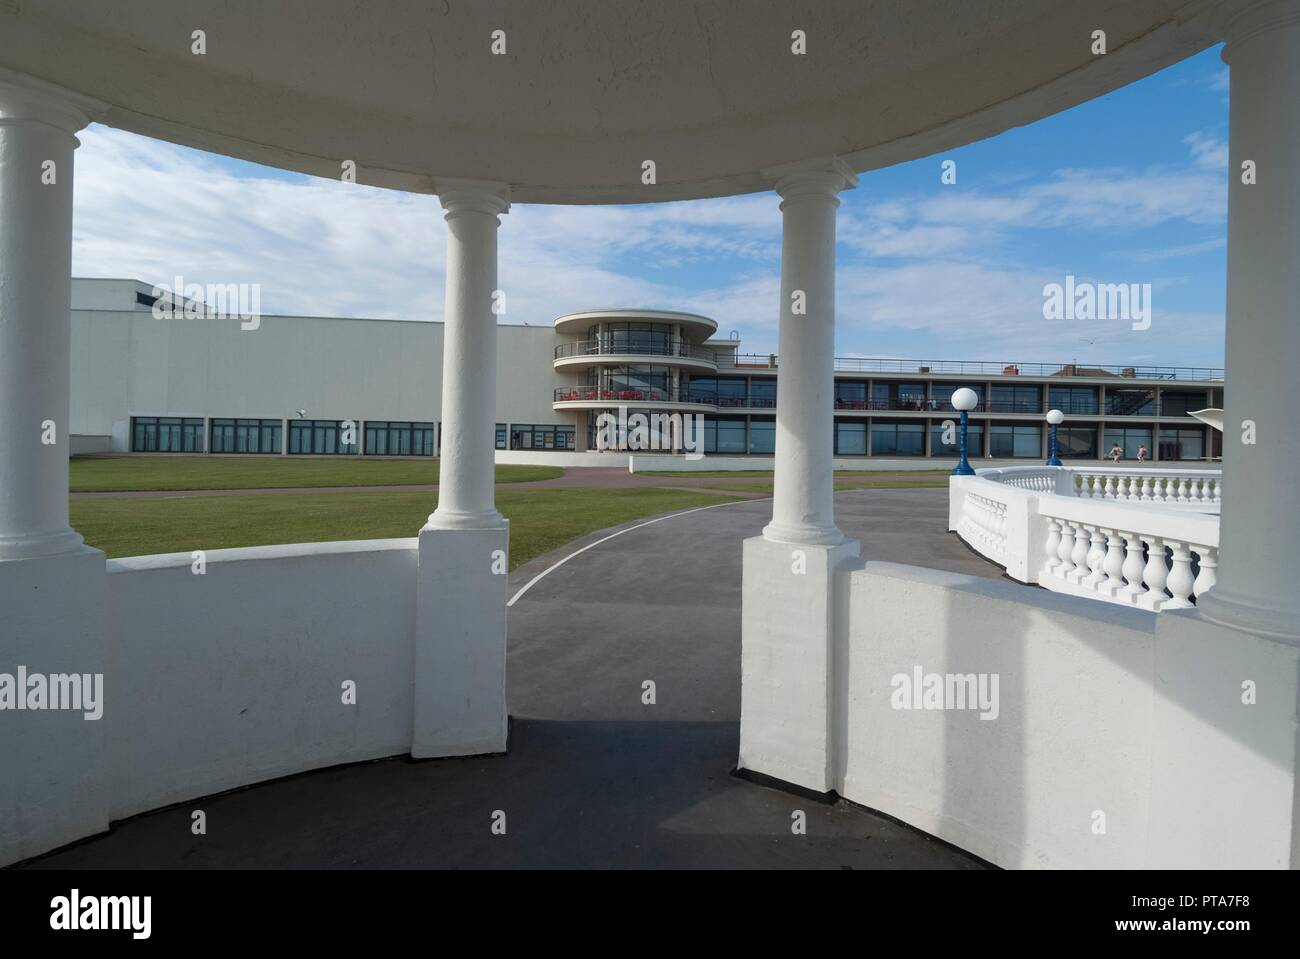 View from the promenade towards the De la Warr Pavilion, an art deco, modernist Grade I listed building built in 1935 by Mendelsohn and Chermayeff, now housing one of the biggest art galleries on the south coast, Bexhill, East Sussex, England. - Stock Image